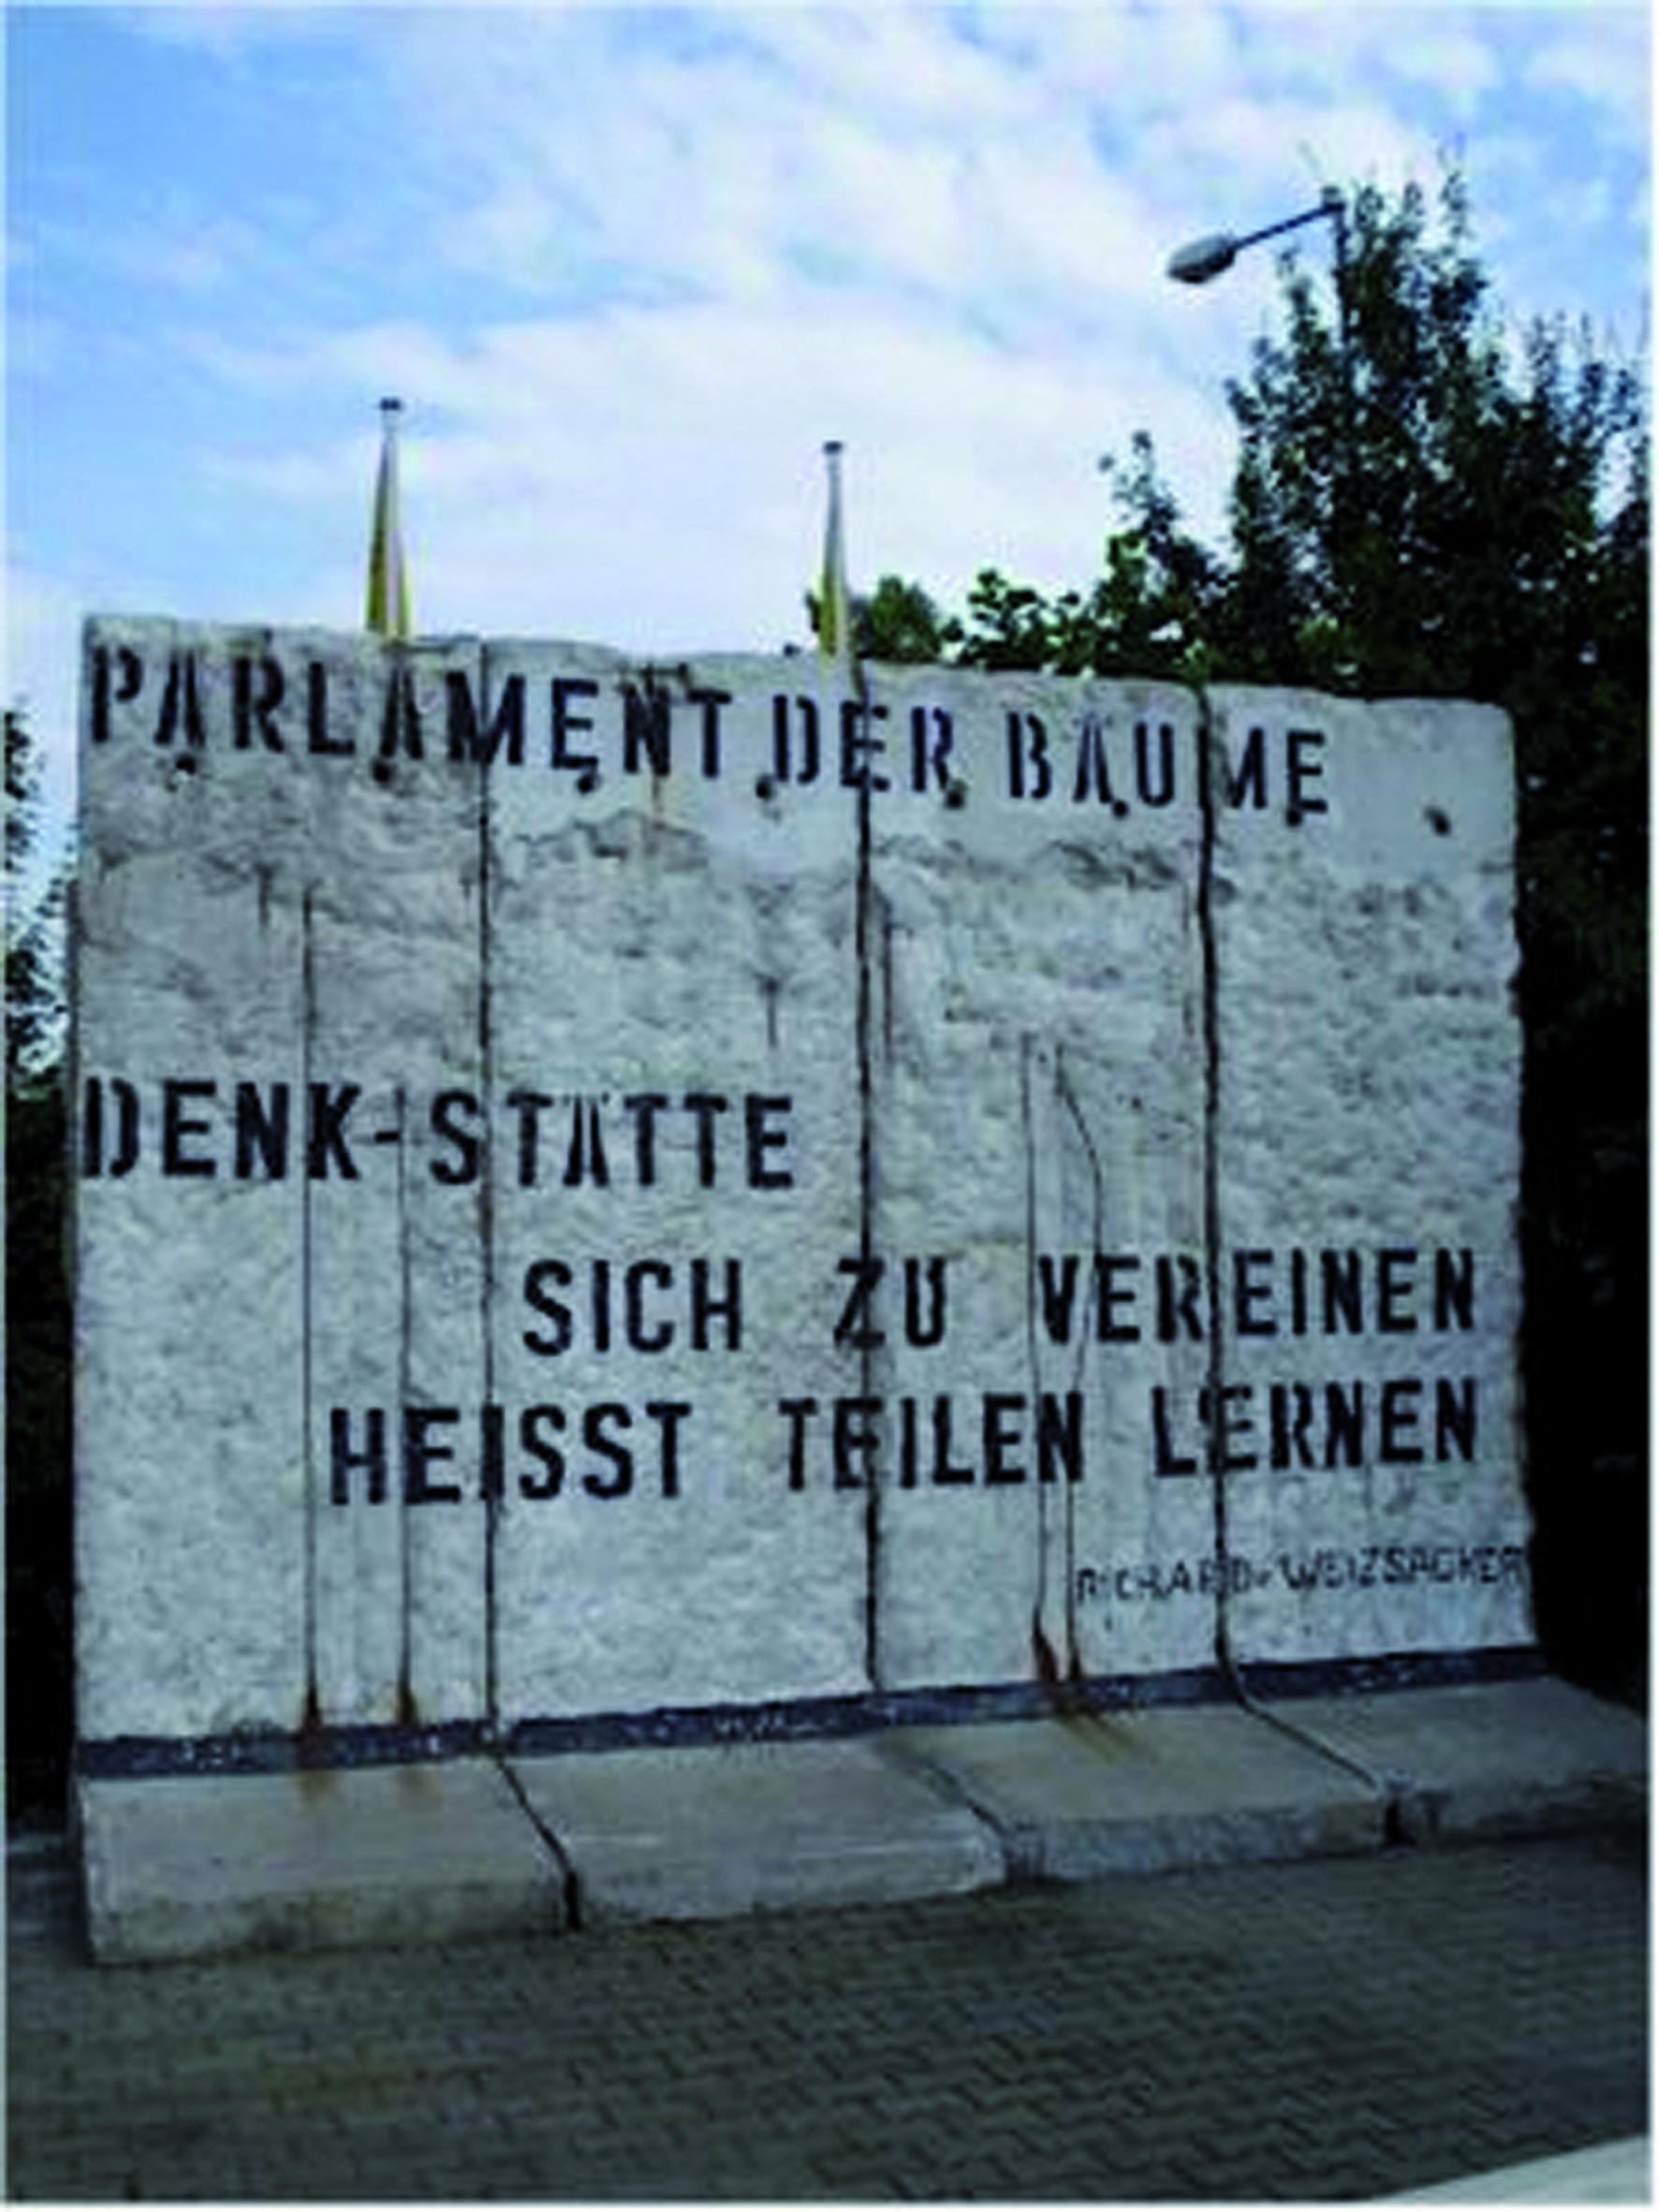 "An original four-piece segment of the Berlin Wall, standing almost 12  almost eight feet deep, and spanning more than 15 feet (including the base slabs). It once belonged to the Parliament of Trees memorial in Berlin. The German phrase stencil-graffitied on the section, spoken by then-German president Richard von Weizsäcker, translates as: ""To Unite Means to Learn to Share"". It is gray, with black lettering, and was photographed outdoors against a blue sky."